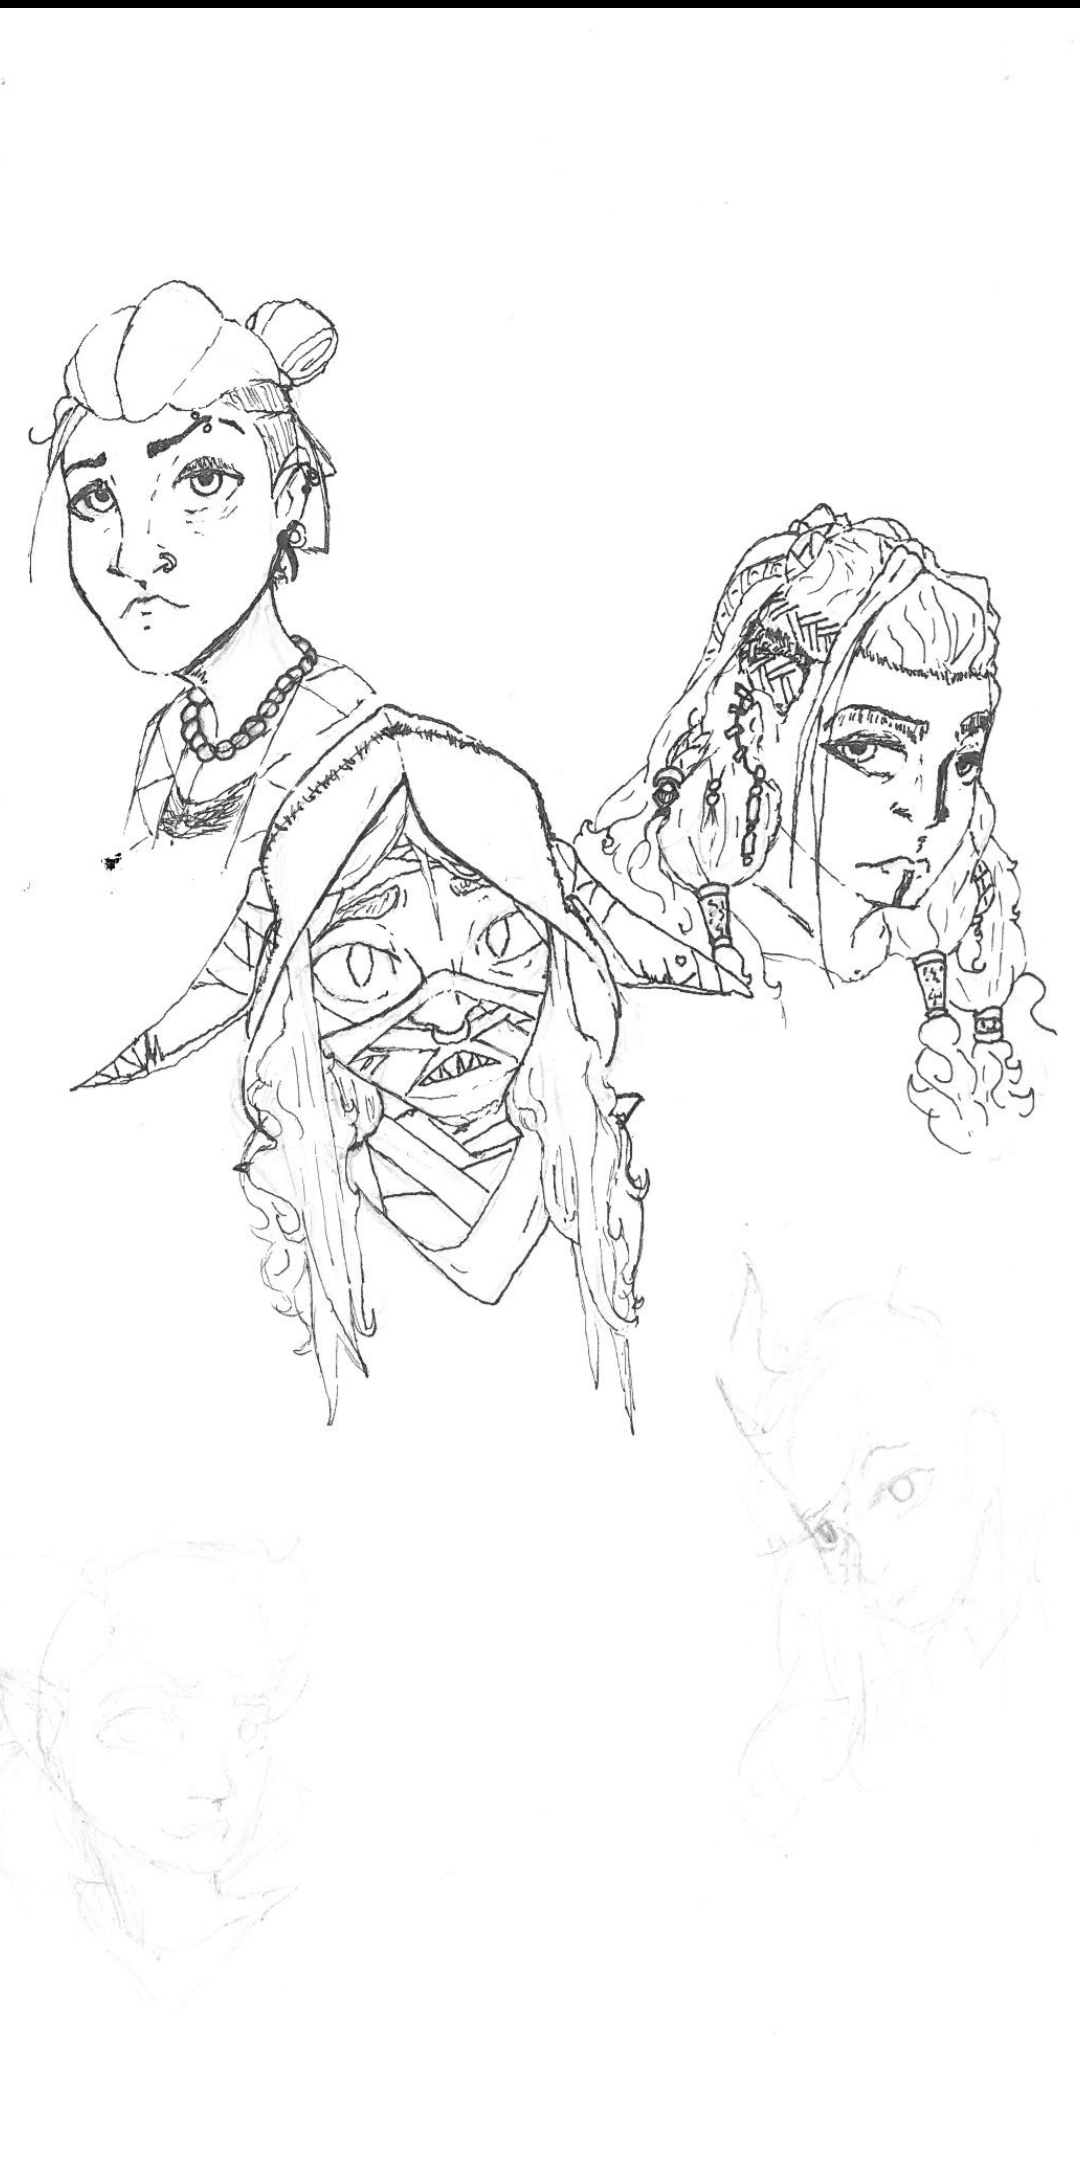 [No Spoilers] Work in progress fan art of Nott, beua, and